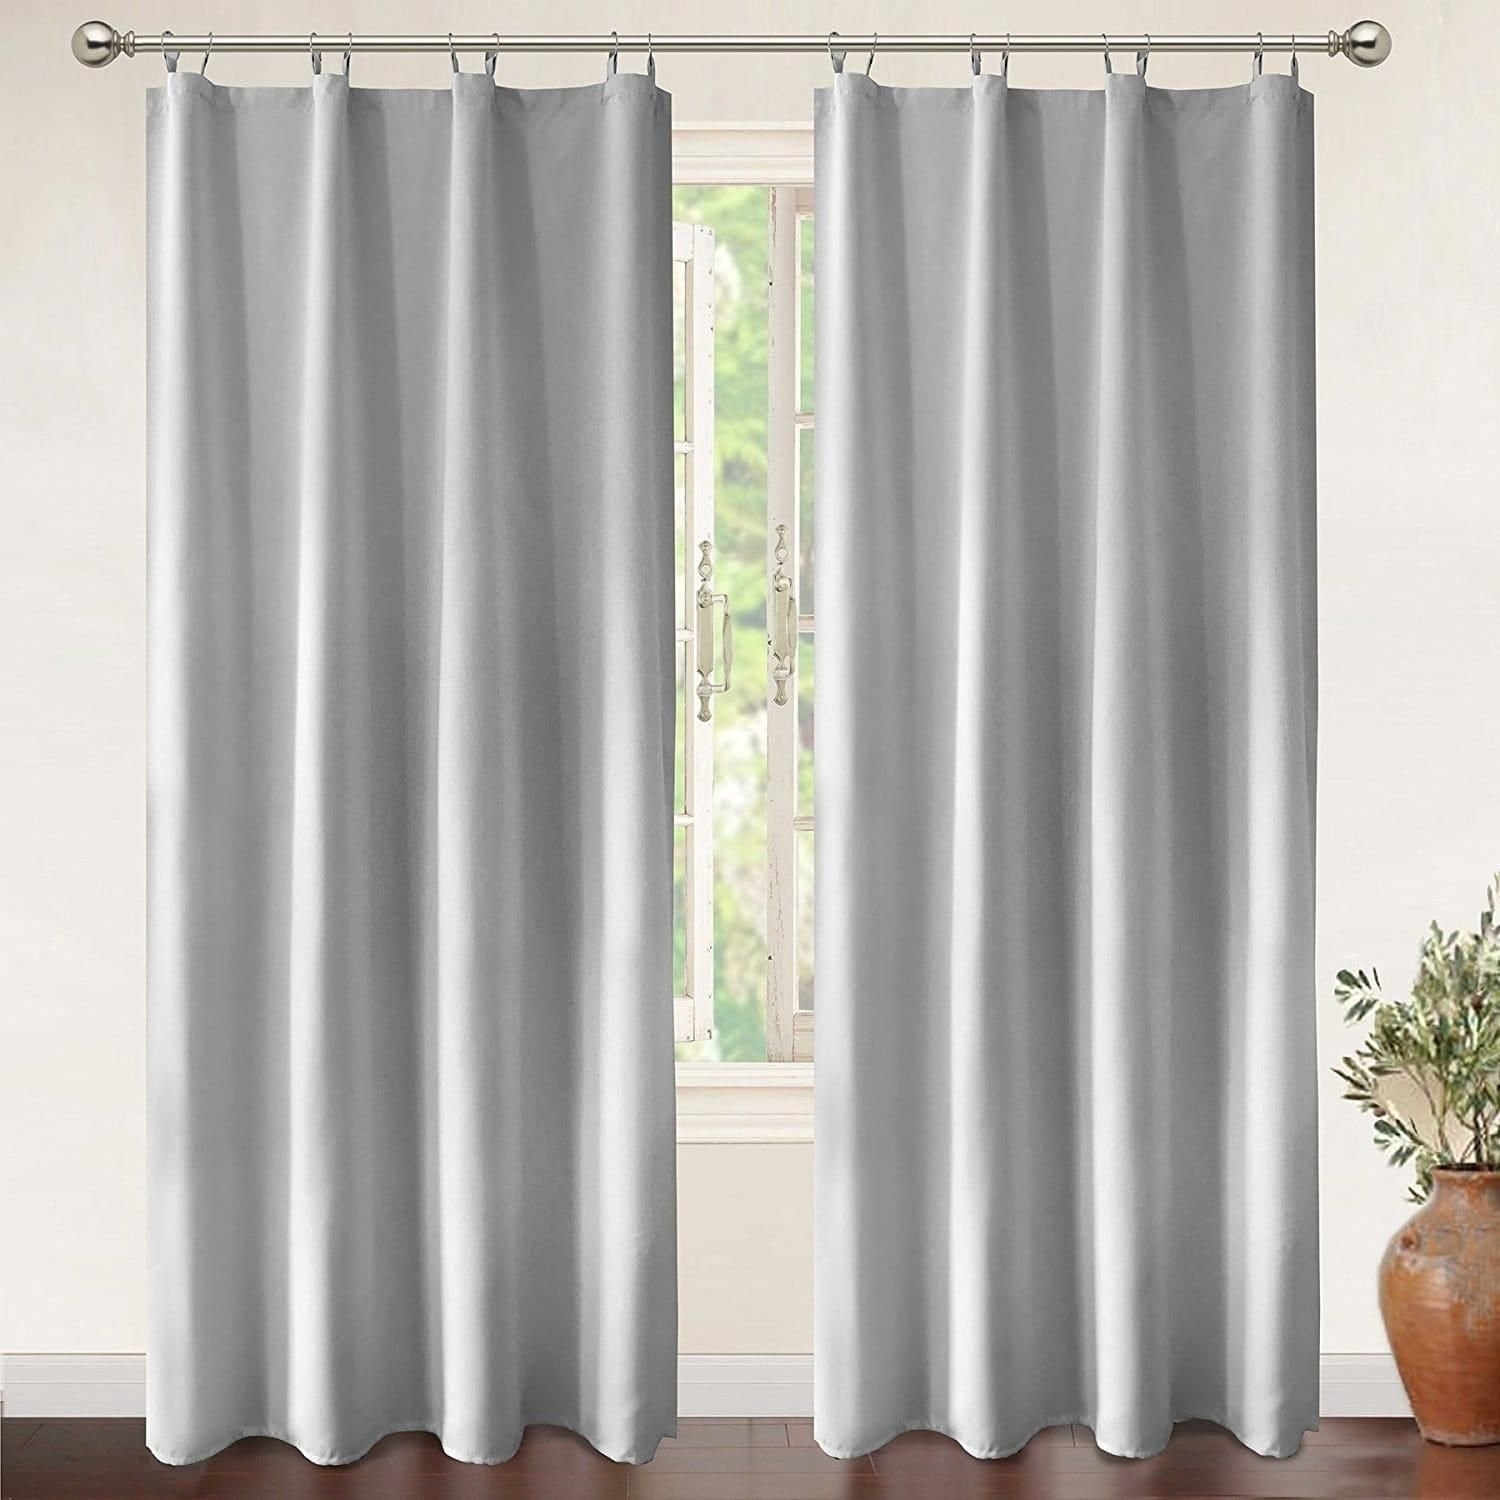 Driftaway Insulated Blackout Curtain Liner For Grommet Curtains